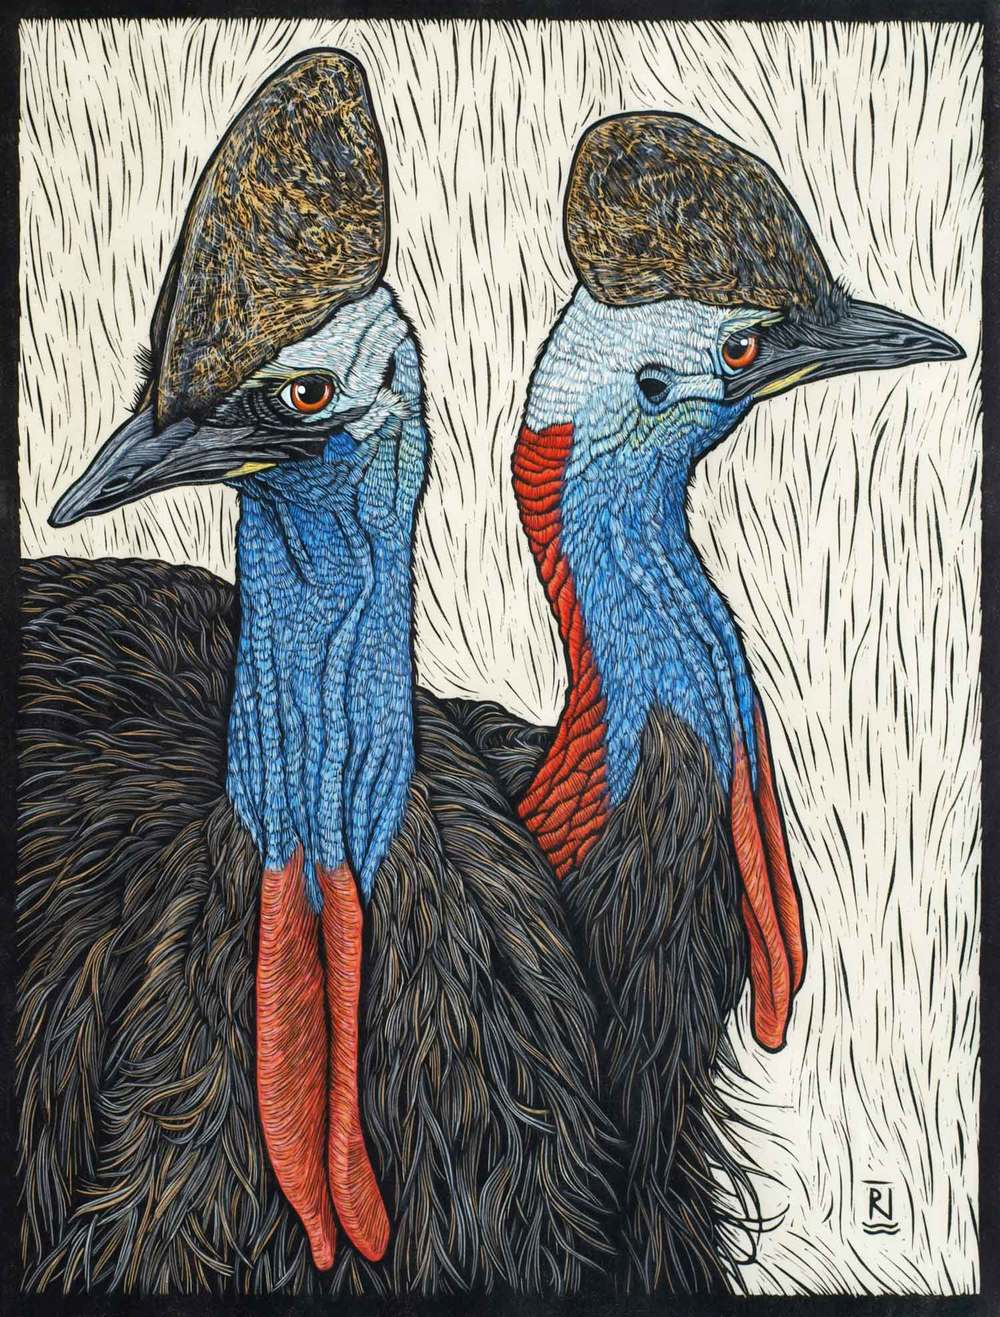 CASSOWARY 57 X 43 CM    EDITION OF 50 HAND COLOURED LINOCUT ON HANDMADE JAPANESE PAPER $1,250